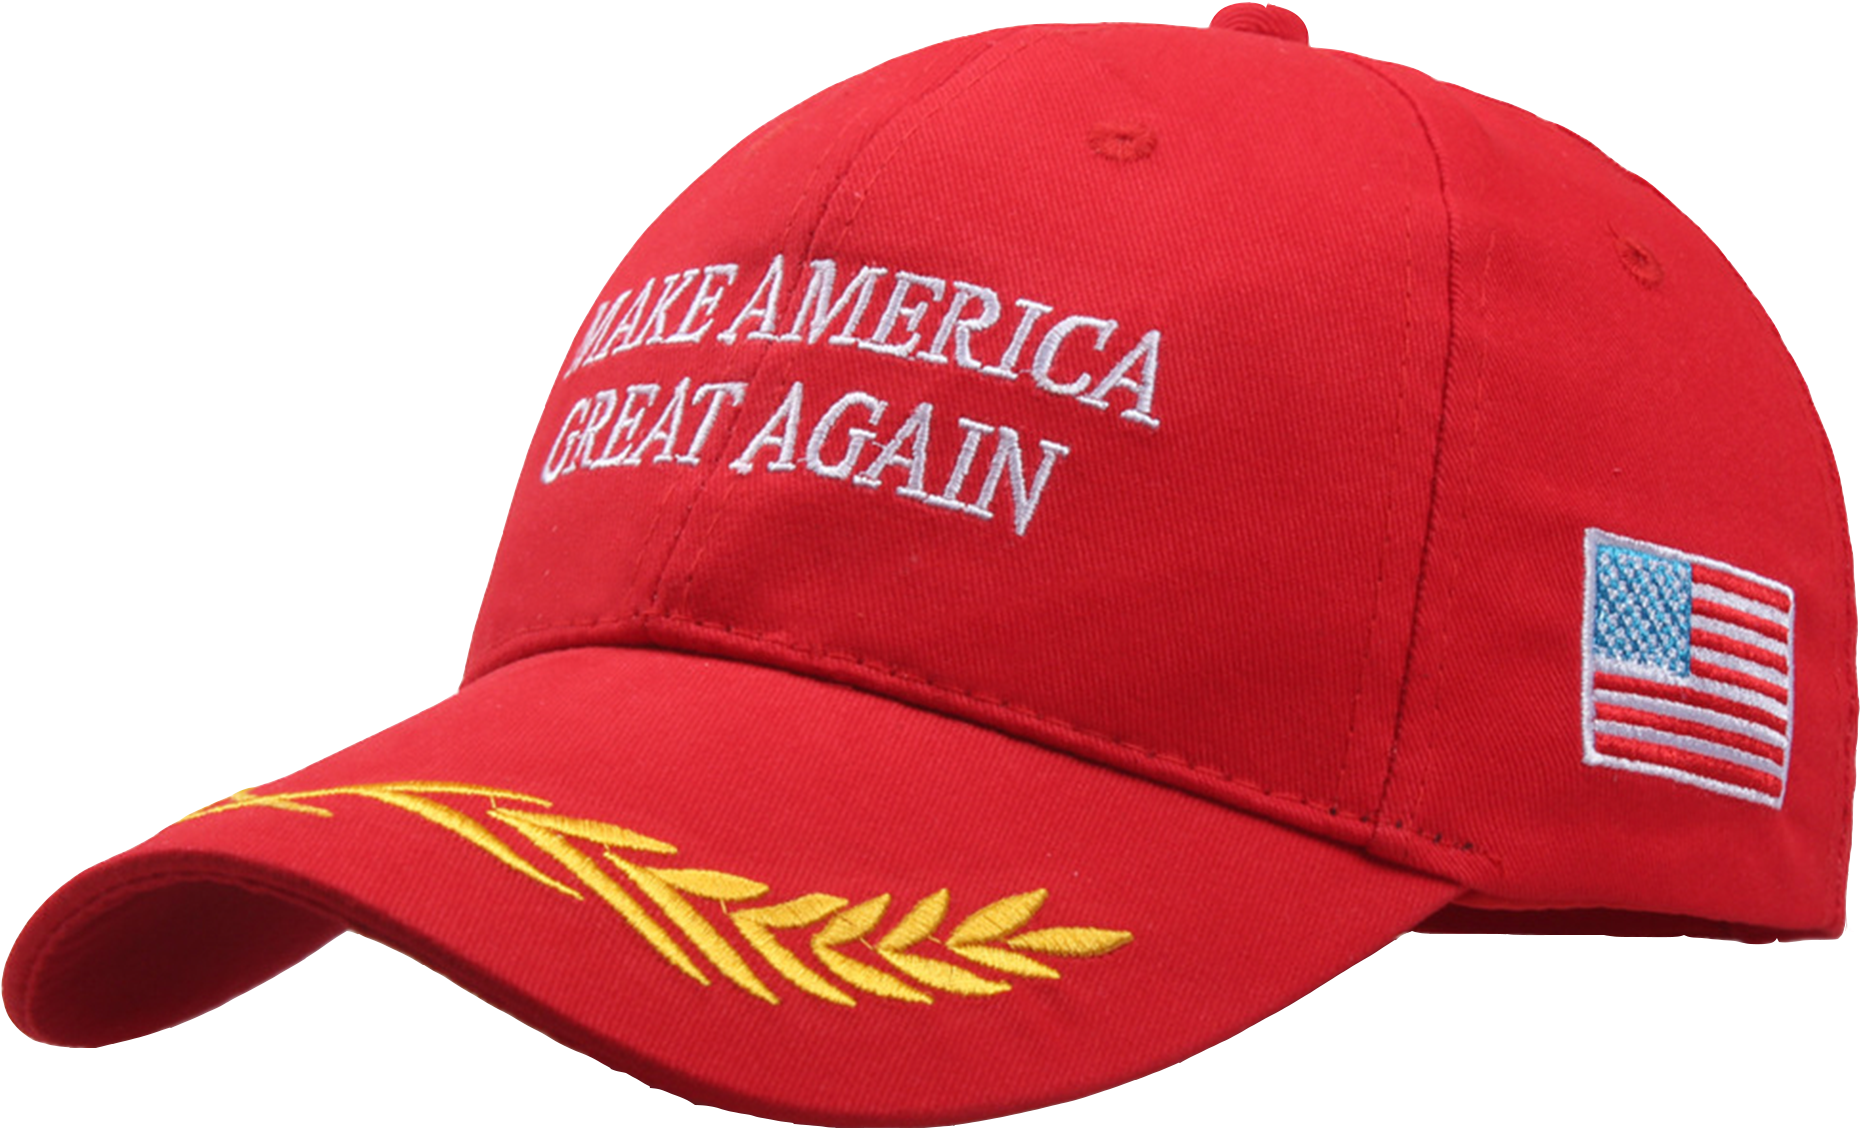 Clip Art Make America Great Again Hat Font.